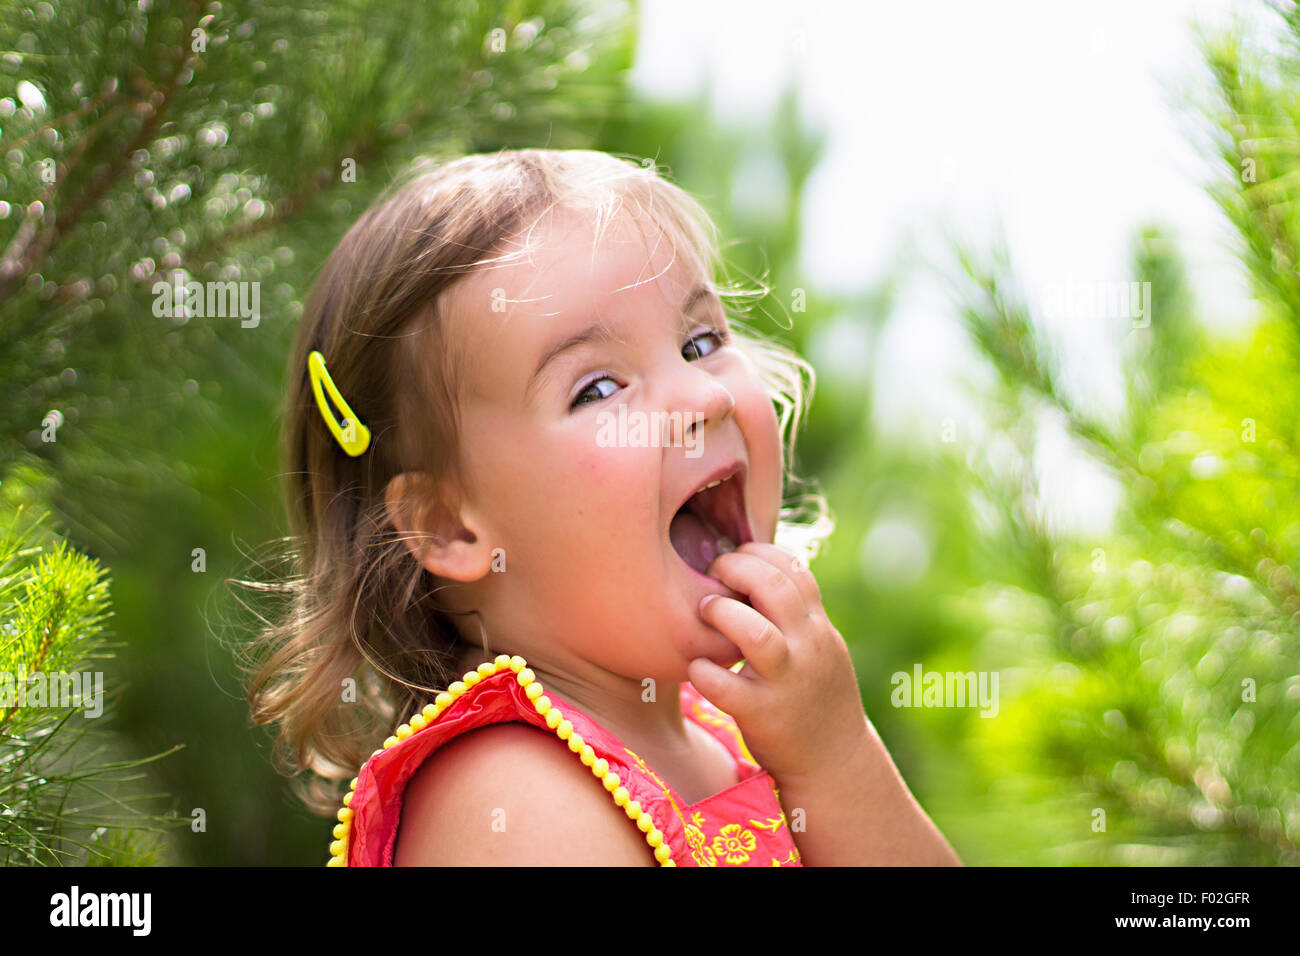 Girl with hand on face laughing Stock Photo